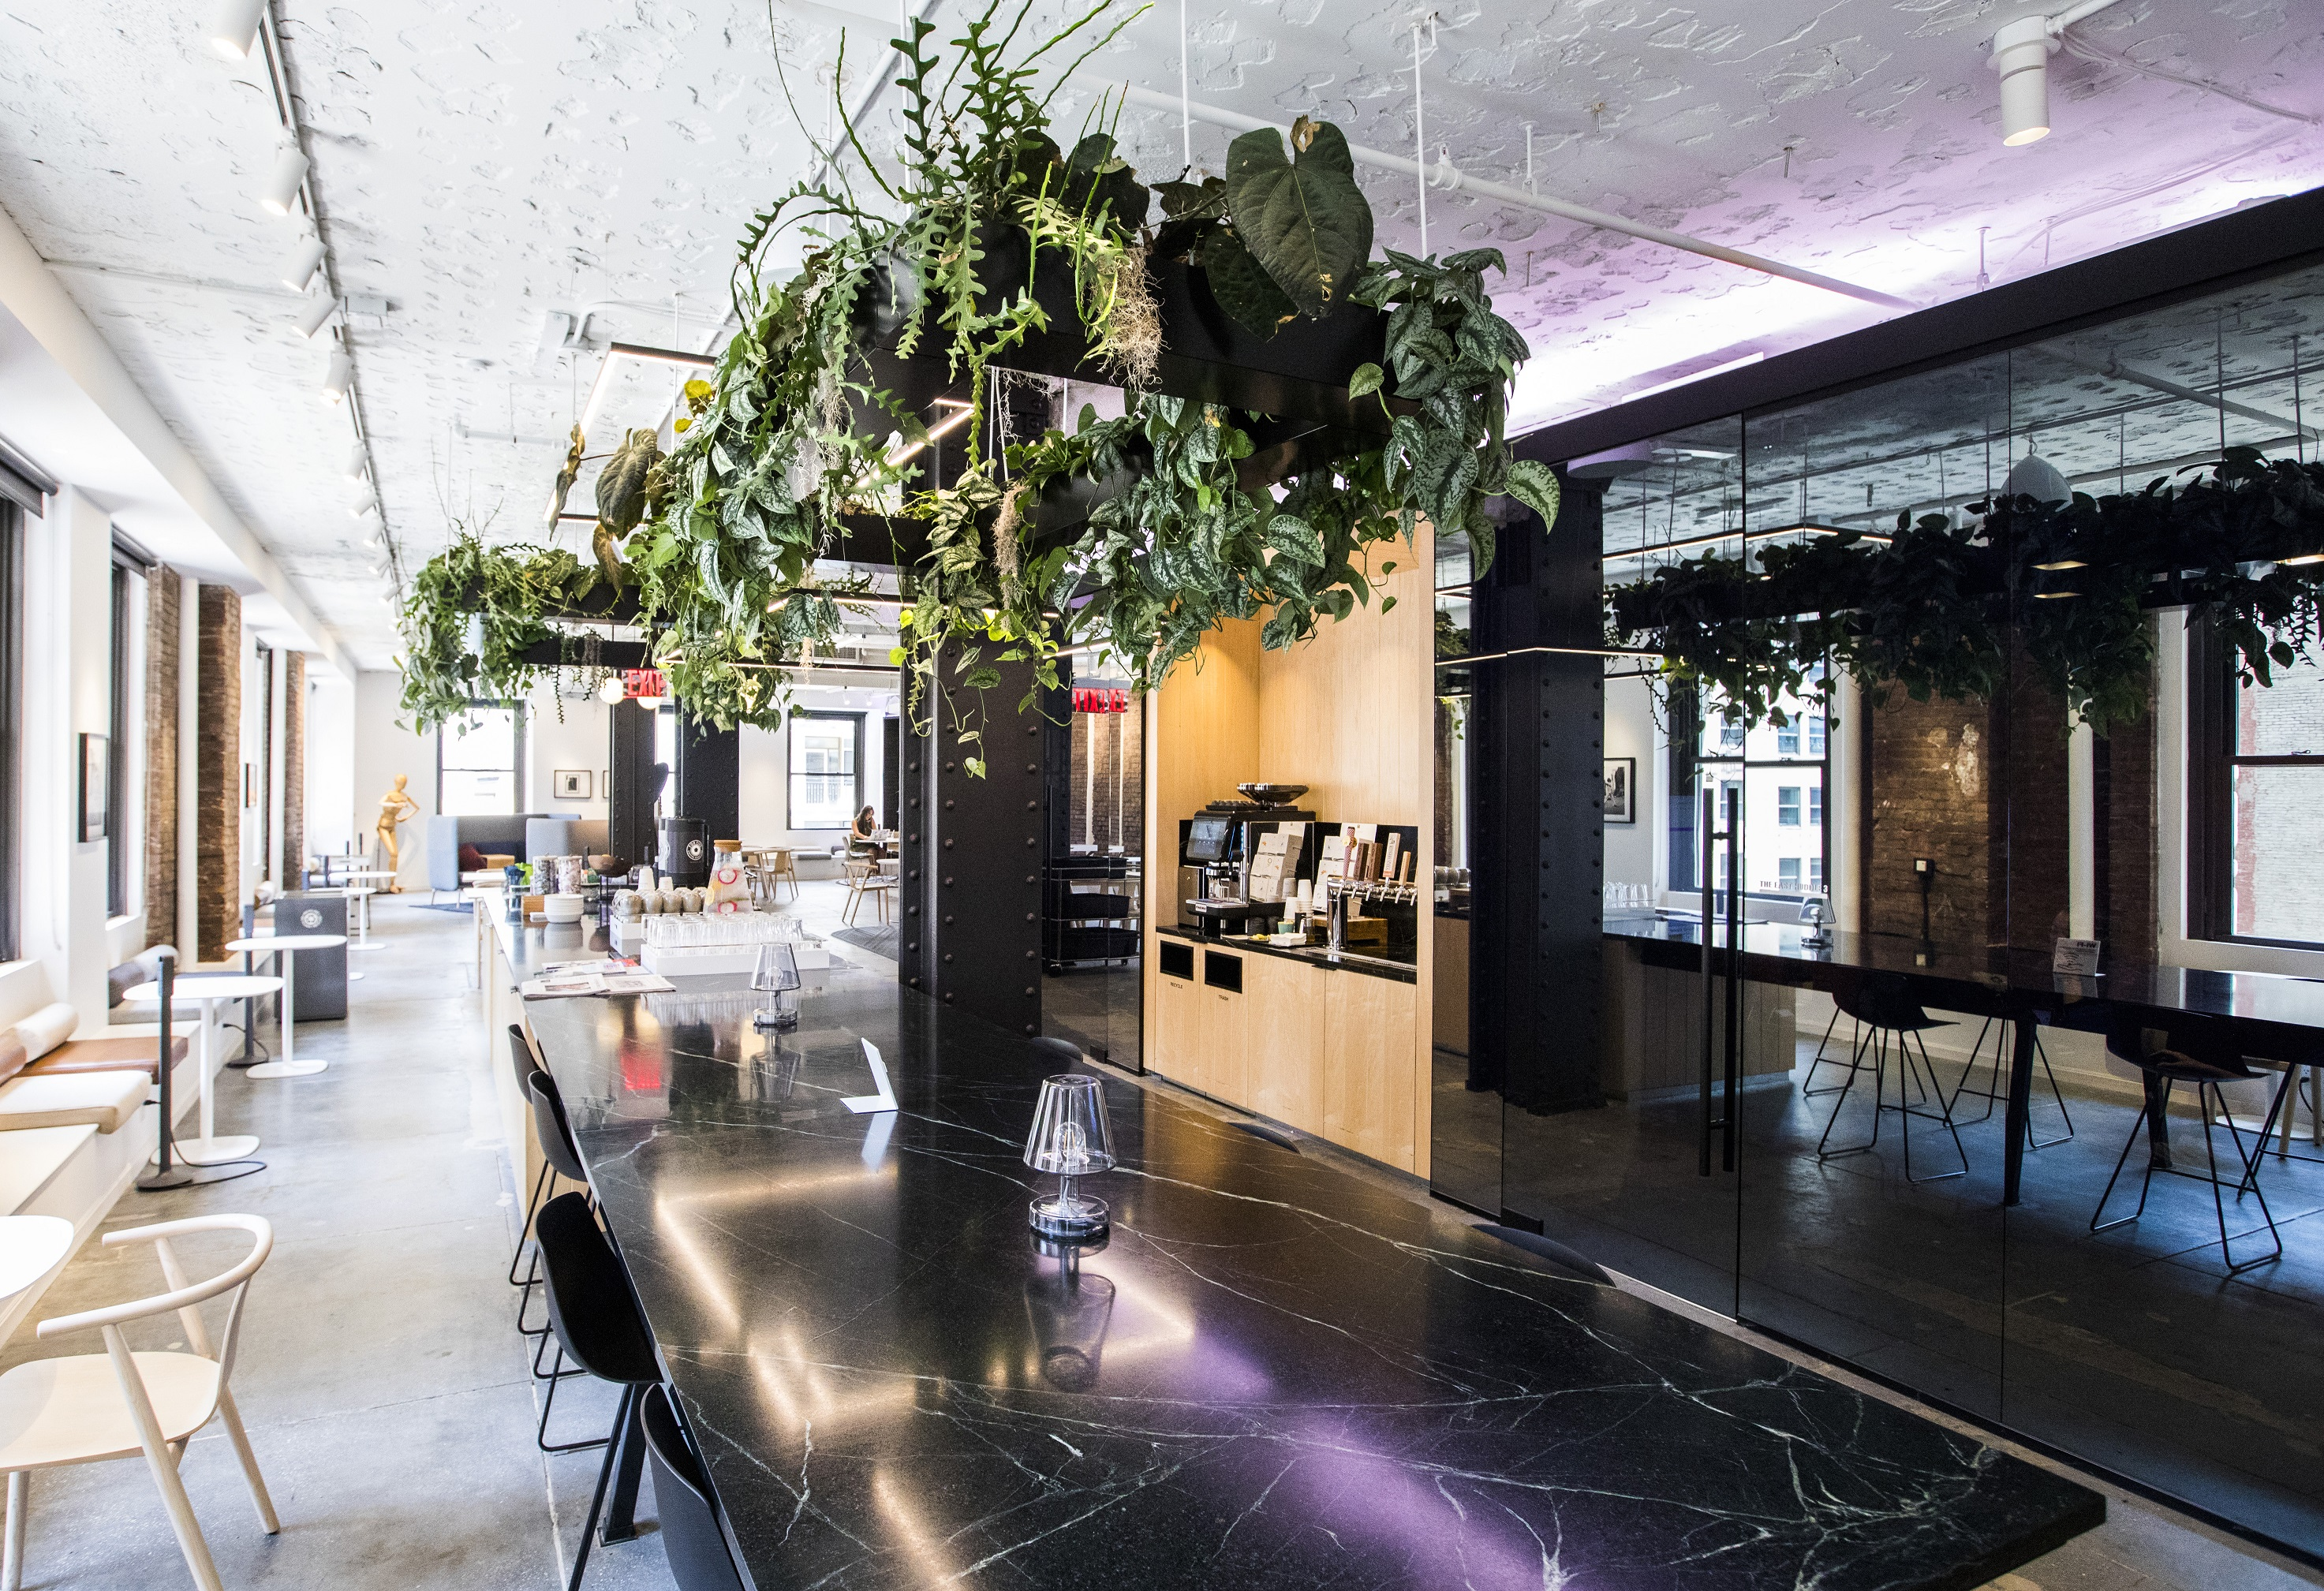 Suspended ceiling planters inspire fresh ideas in this collaborative environment.